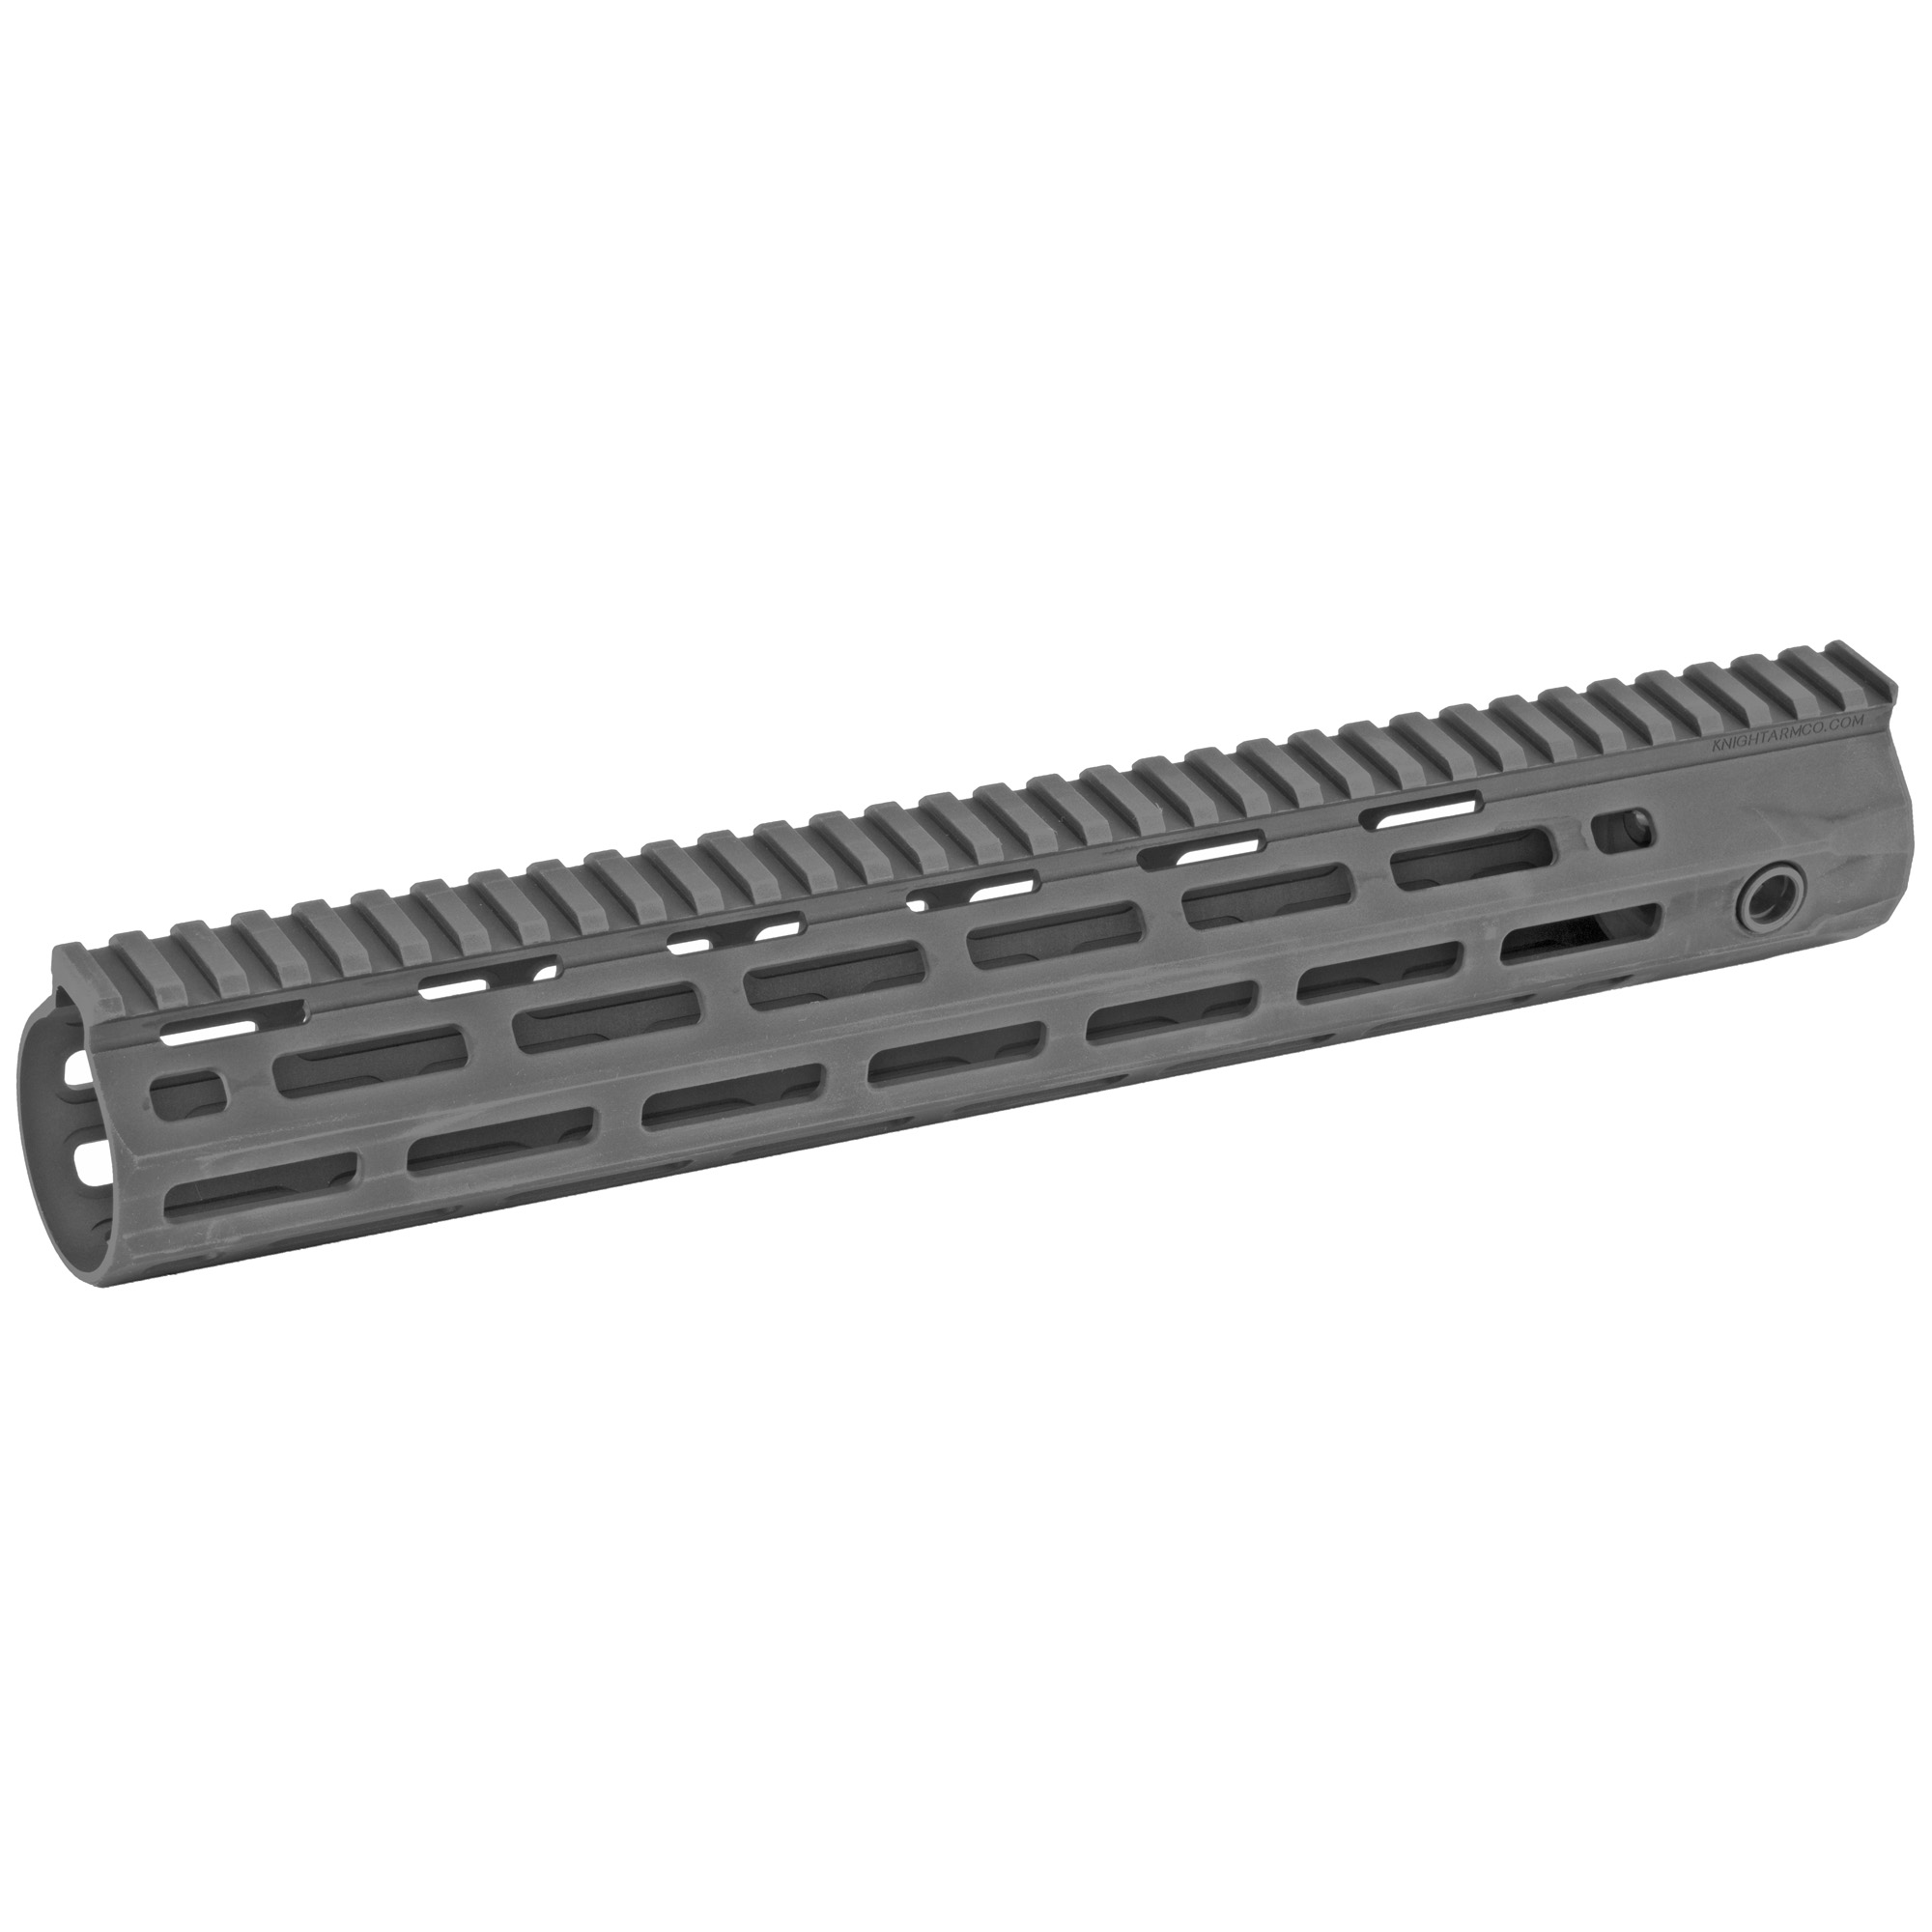 """Knights Armament Co.'s URX 4 13"""" M-LOK Forend Assembly Kit is a fully modular design that utilizes the revolutionary M-LOK accessory mounting system. The URX 4 Rail is stronger and more stable than previous URX designs due to its one-piece construction. It is also lighter due to its Integral Barrel Nut (IBN) system of attachment. The IBN system allows the rail itself to act as the barrel nut when torqued onto the rifle"""" completely eliminating the need for a separate steel barrel nut. M-LOK accessories may be mounted anywhere along the URX 4's length"""" making it one of the most user configurable designs on the market."""